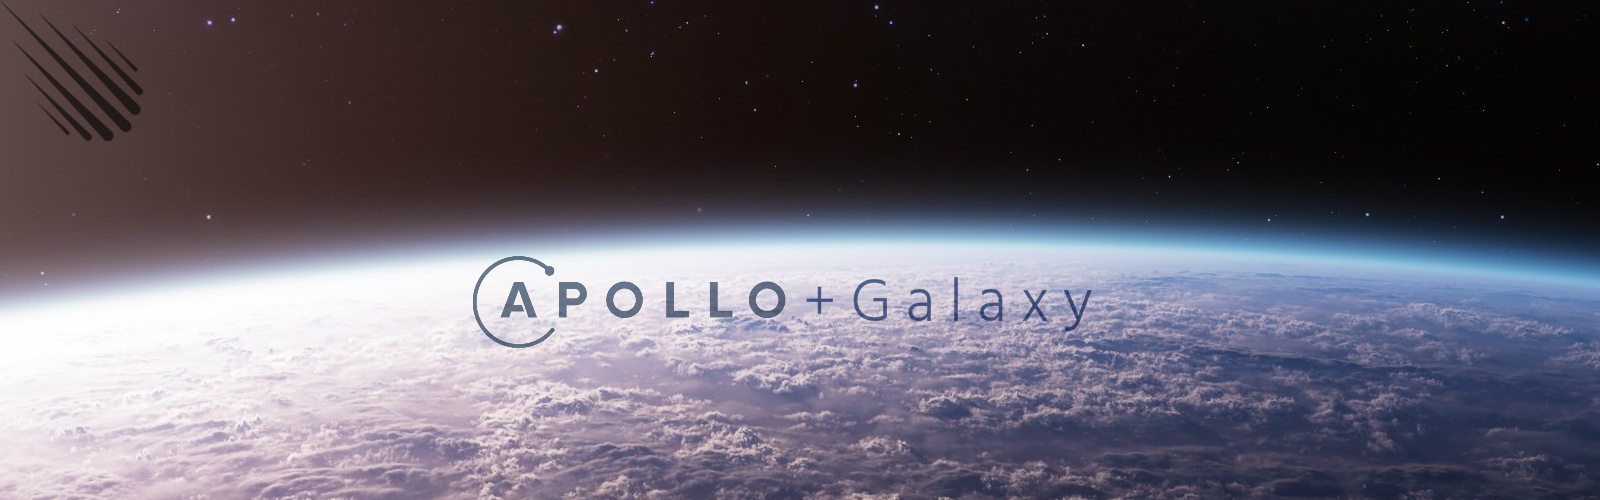 Apollo galaxy banner